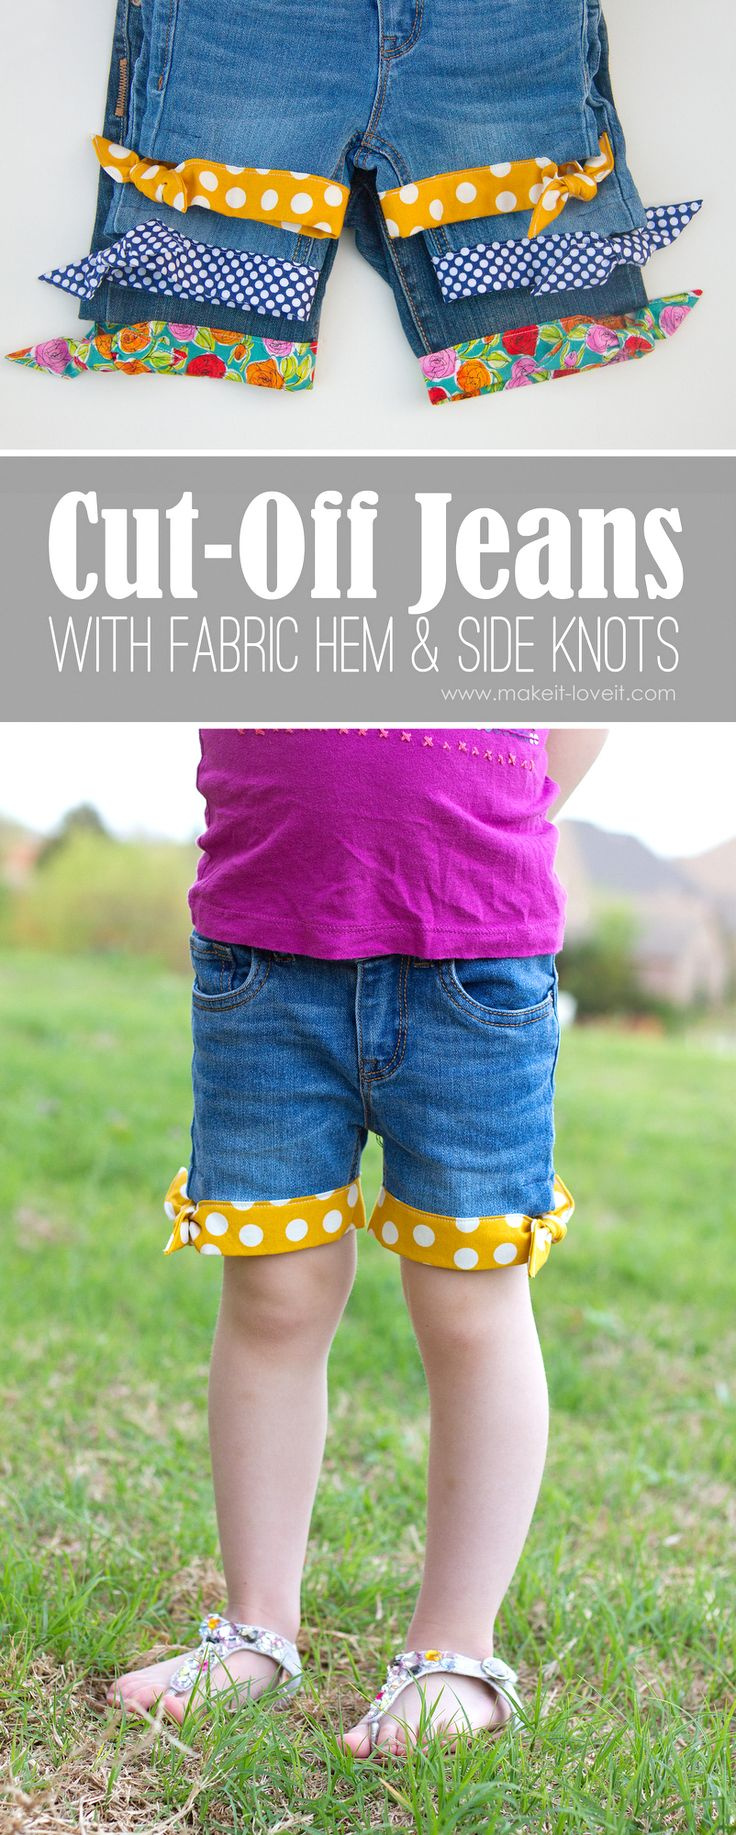 aus lang wird kurz - Hose mit süßem Knoten und schönem bunten Abschluss - DIY Cut-Off Jeans...with Fabric Hem and Side Knot | via Make It and Love It